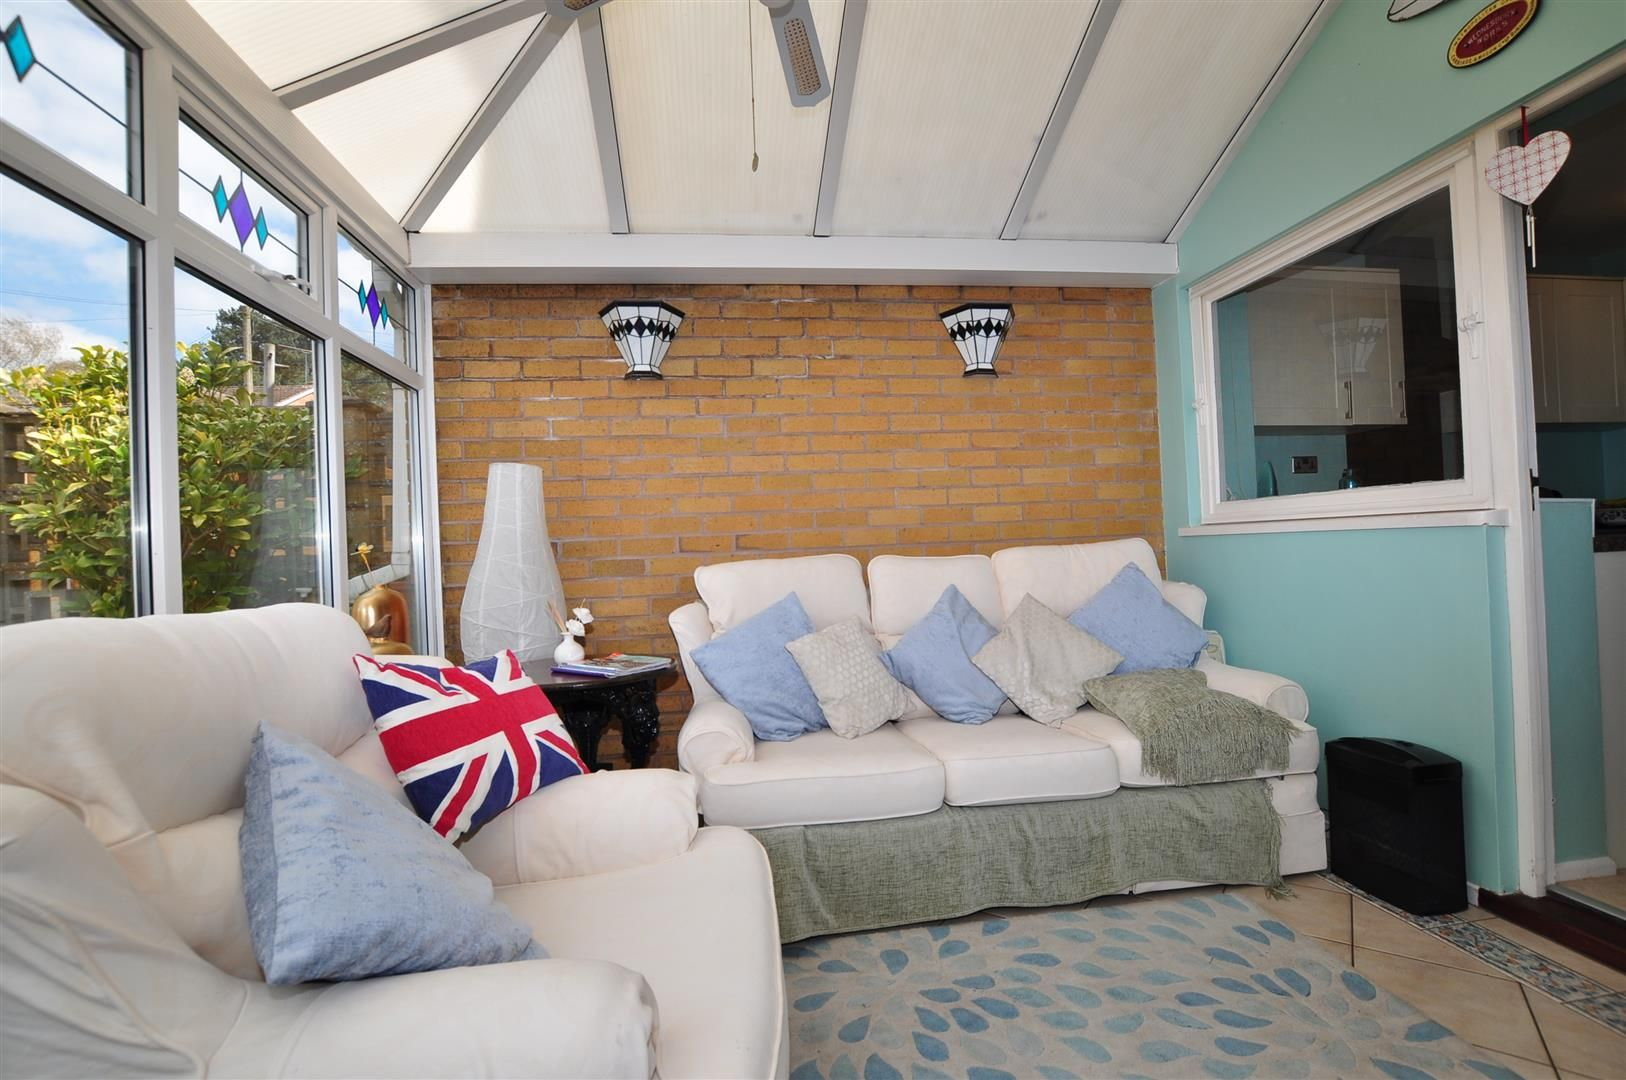 3 bed house for sale in Hagley 6